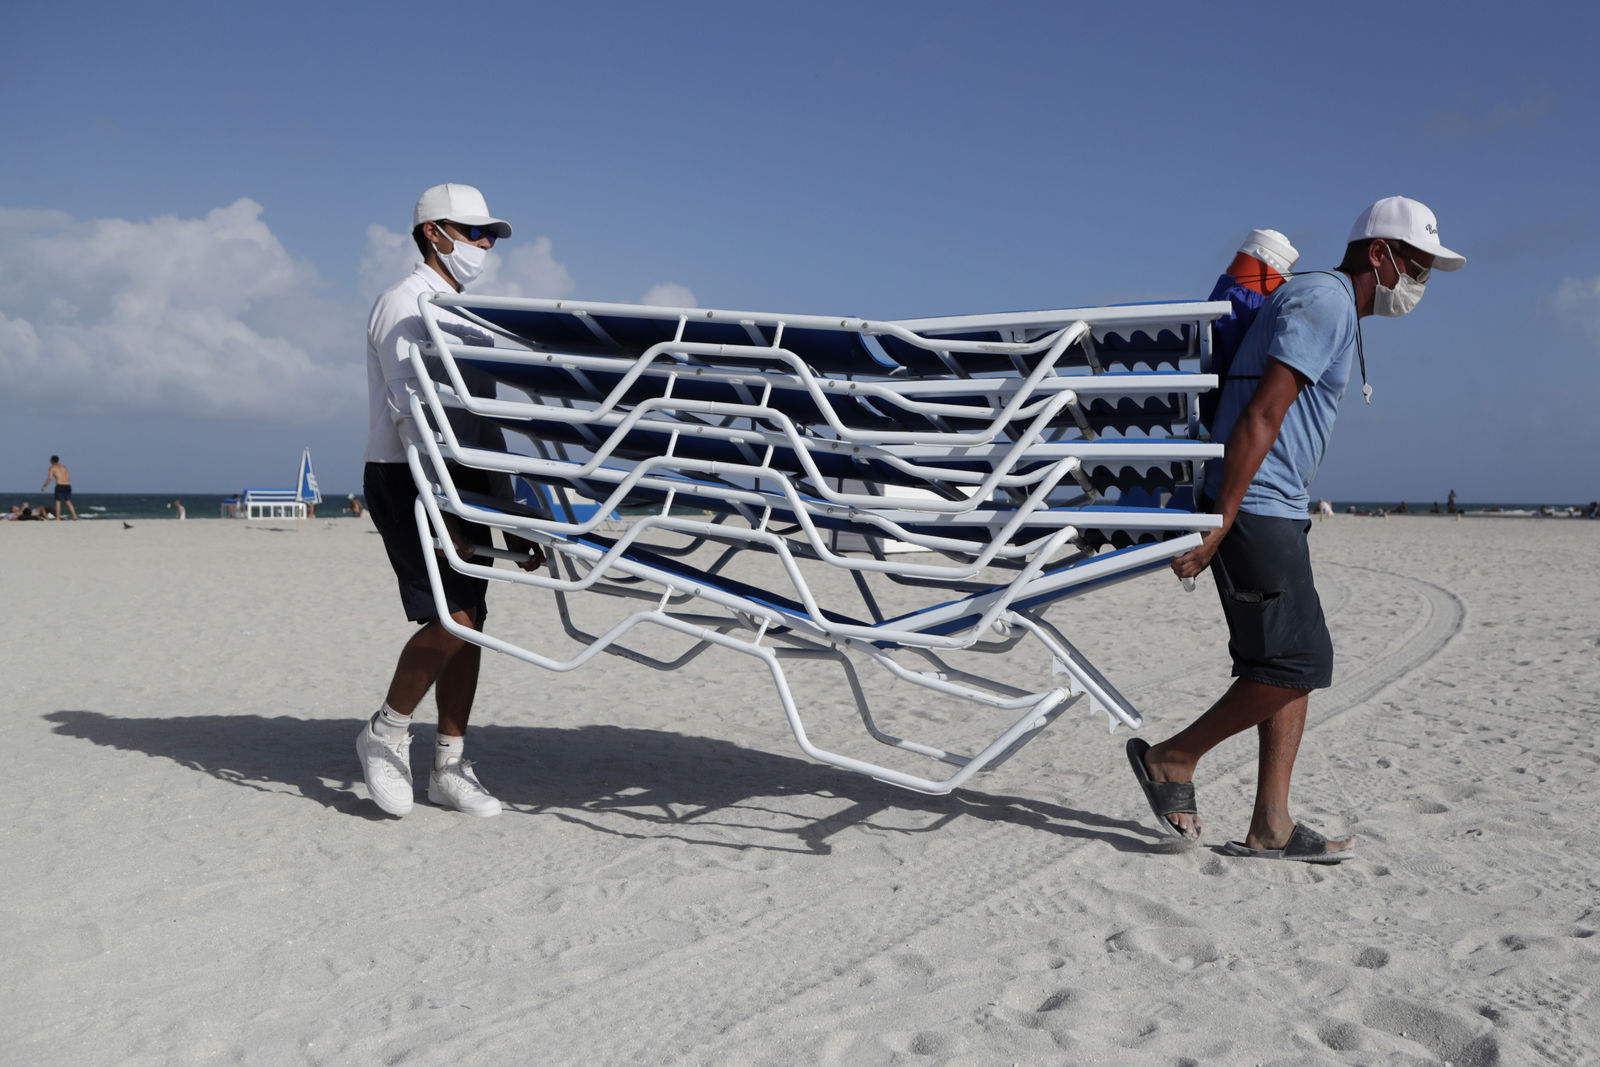 Workers remove chairs from the beach in preparation for Hurricane Isaias, Friday, July 31, 2020, in Miami Beach, Fla. Forecasters declared a hurricane warning for parts of the Florida coast Friday as Hurricane Isaias drenched the Bahamas on track for the U.S. East Coast. (AP Photo/Lynne Sladky)